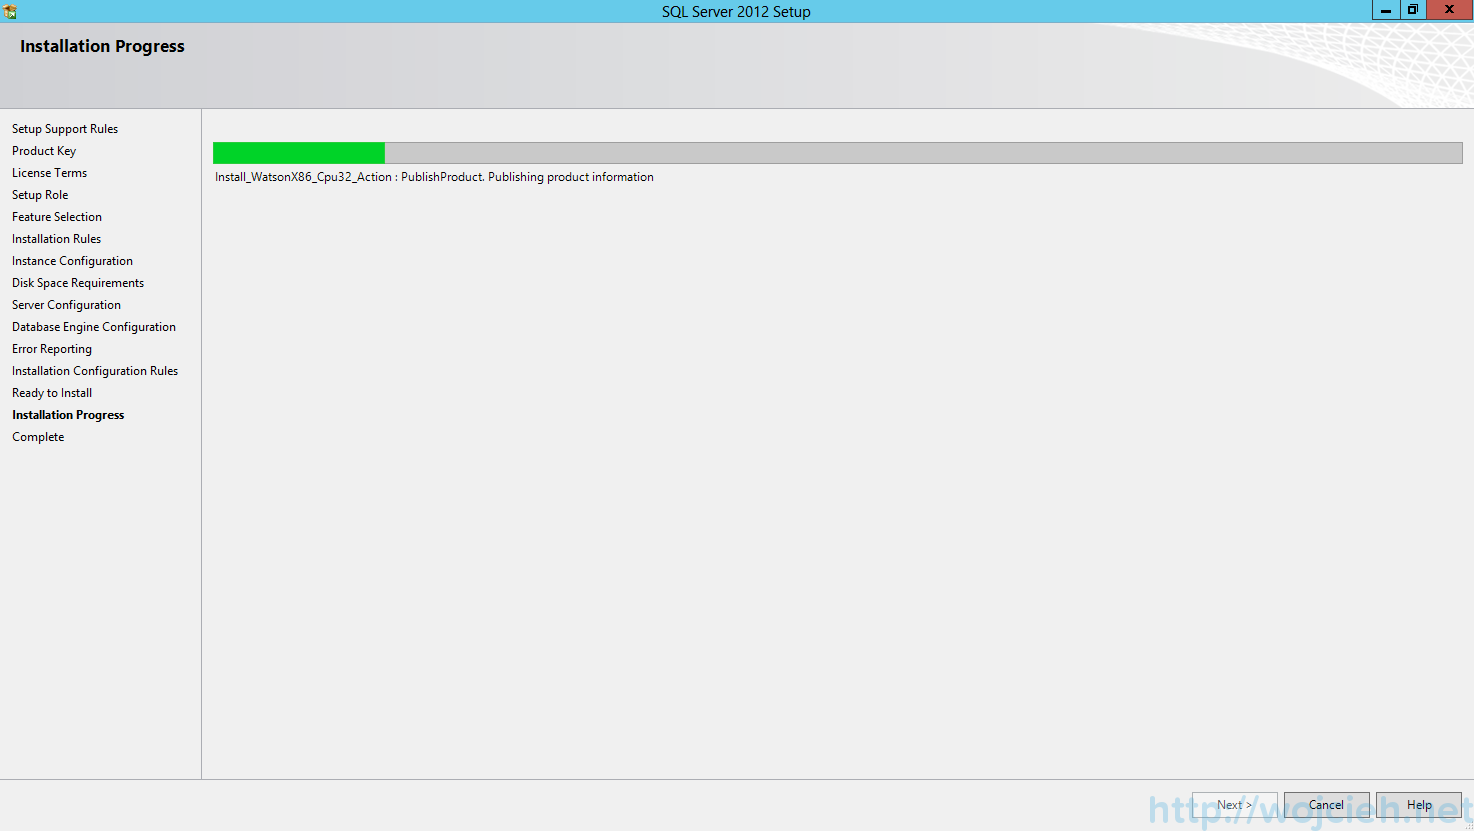 SQL Server 2012 SP1 - Installation Progress